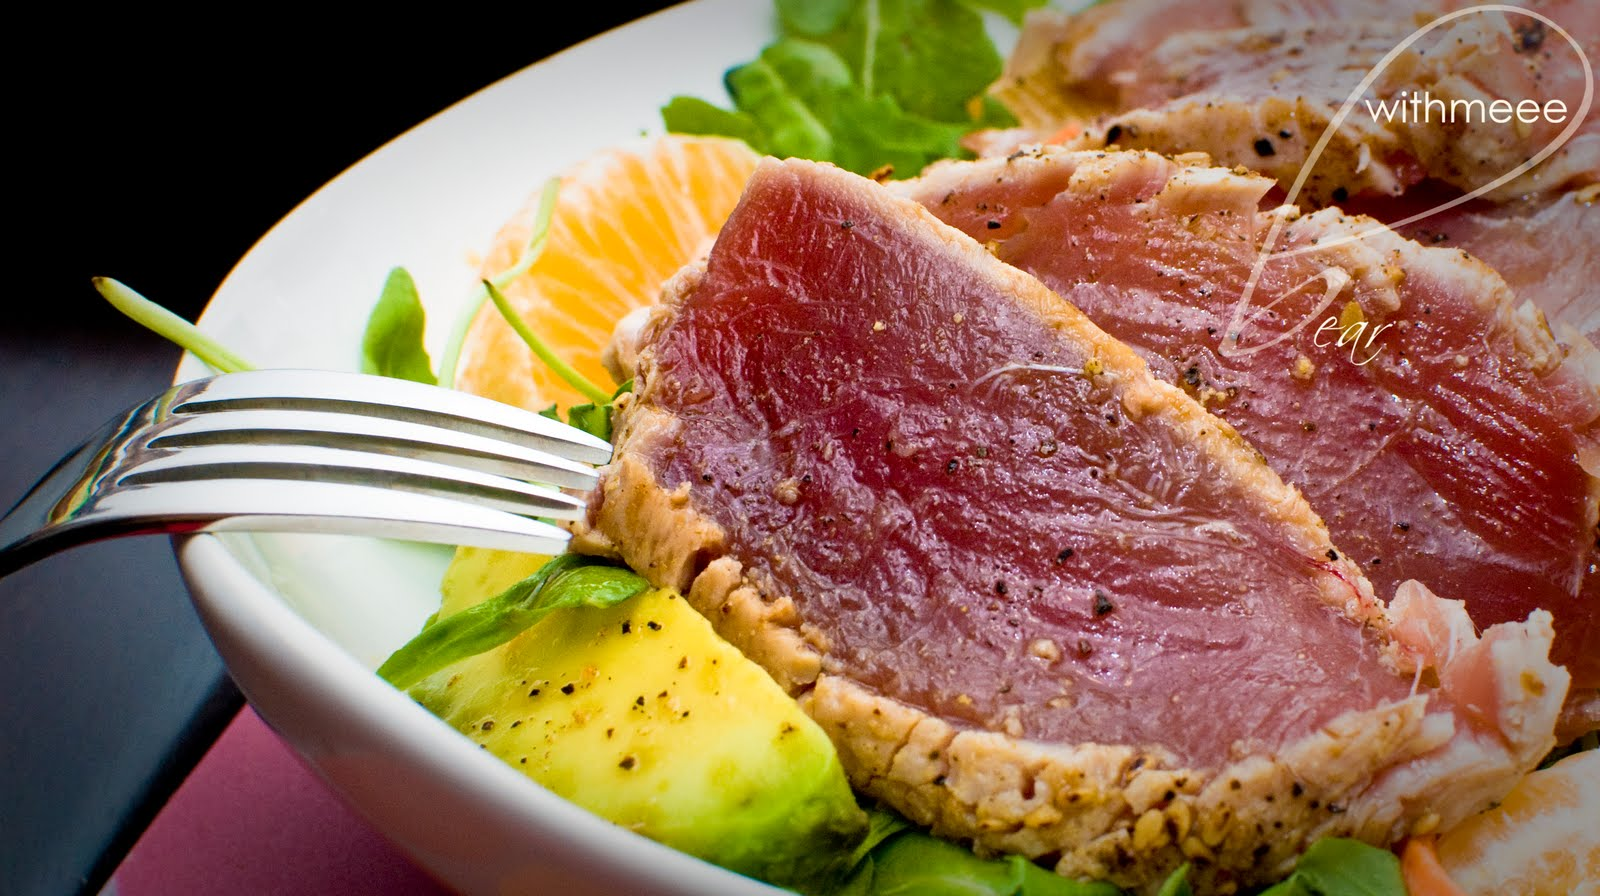 Bearwithmeee: Seared Ahi Tuna